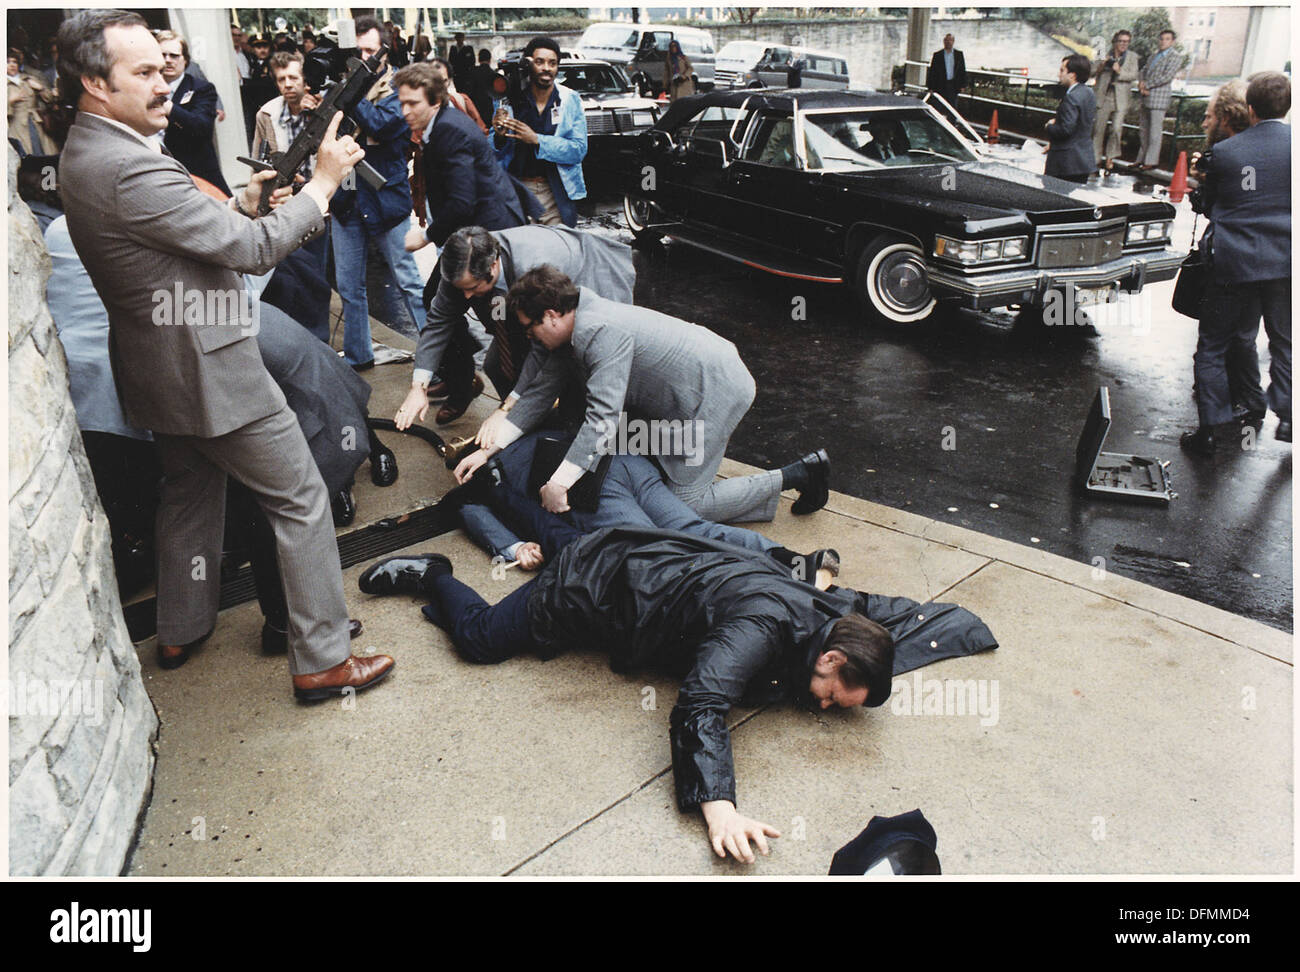 Photograph of chaos outside the Washington Hilton Hotel after the assassination attempt on President Reagan 198514Stock Photo